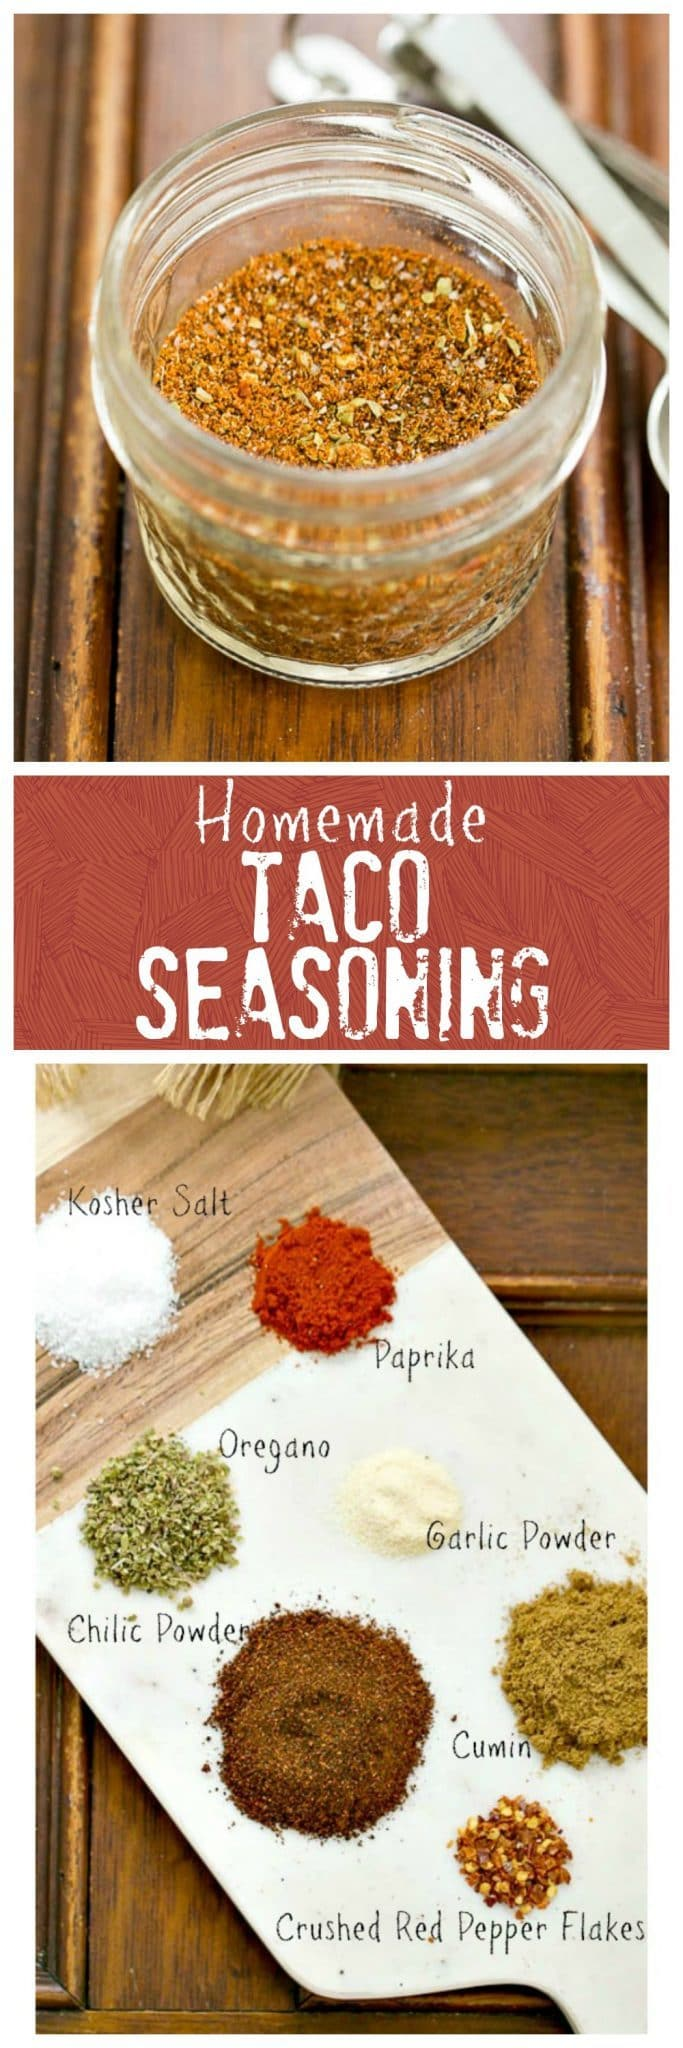 Homemade Taco Seasoning!